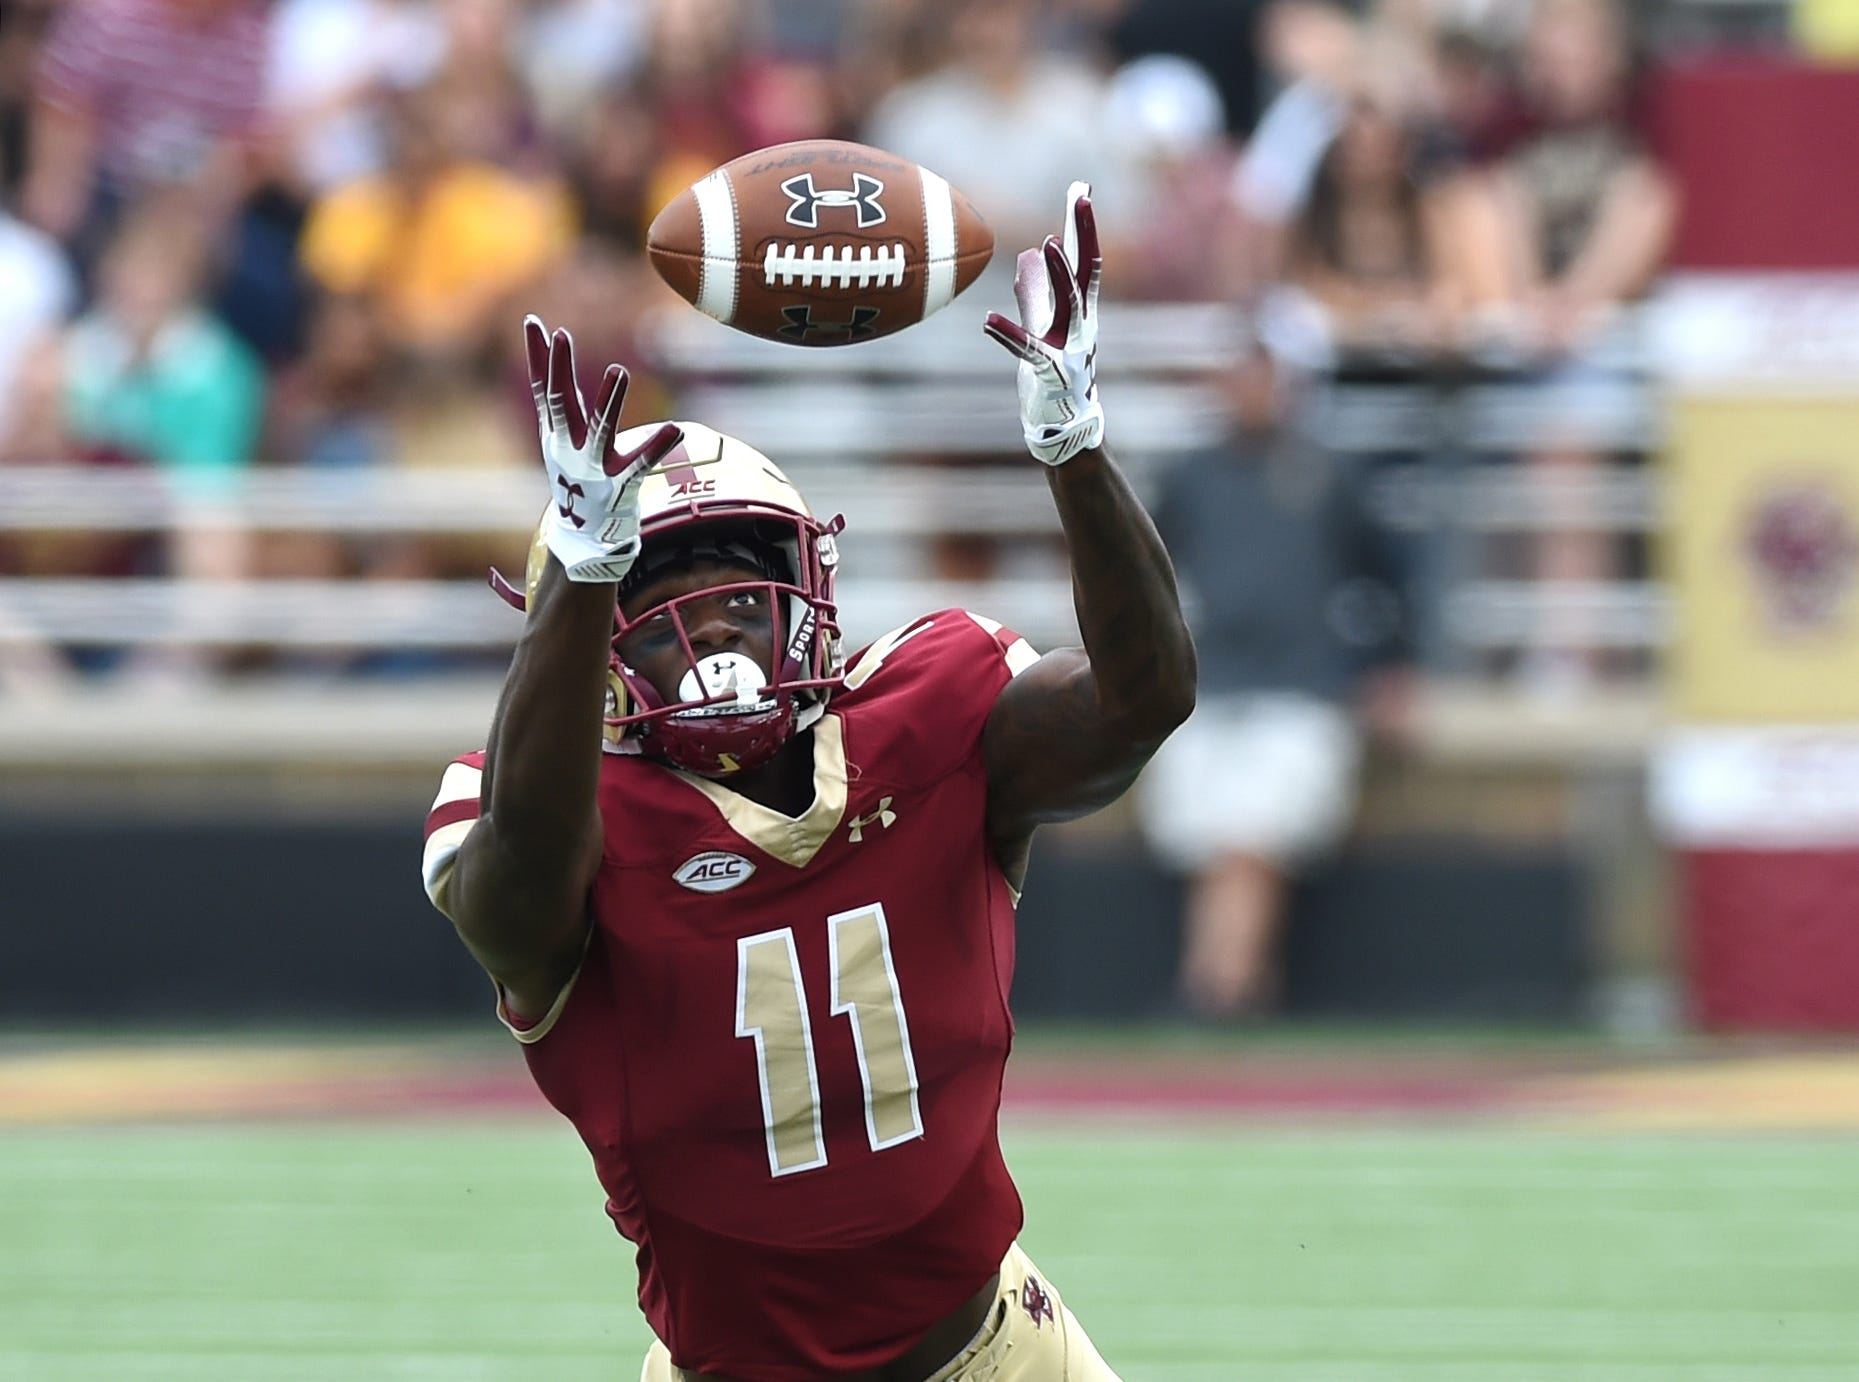 Boston College Eagles wide receiver CJ Lewis (11) reaches for the ball during the first half against the Holy Cross Crusaders at Alumni Stadium.